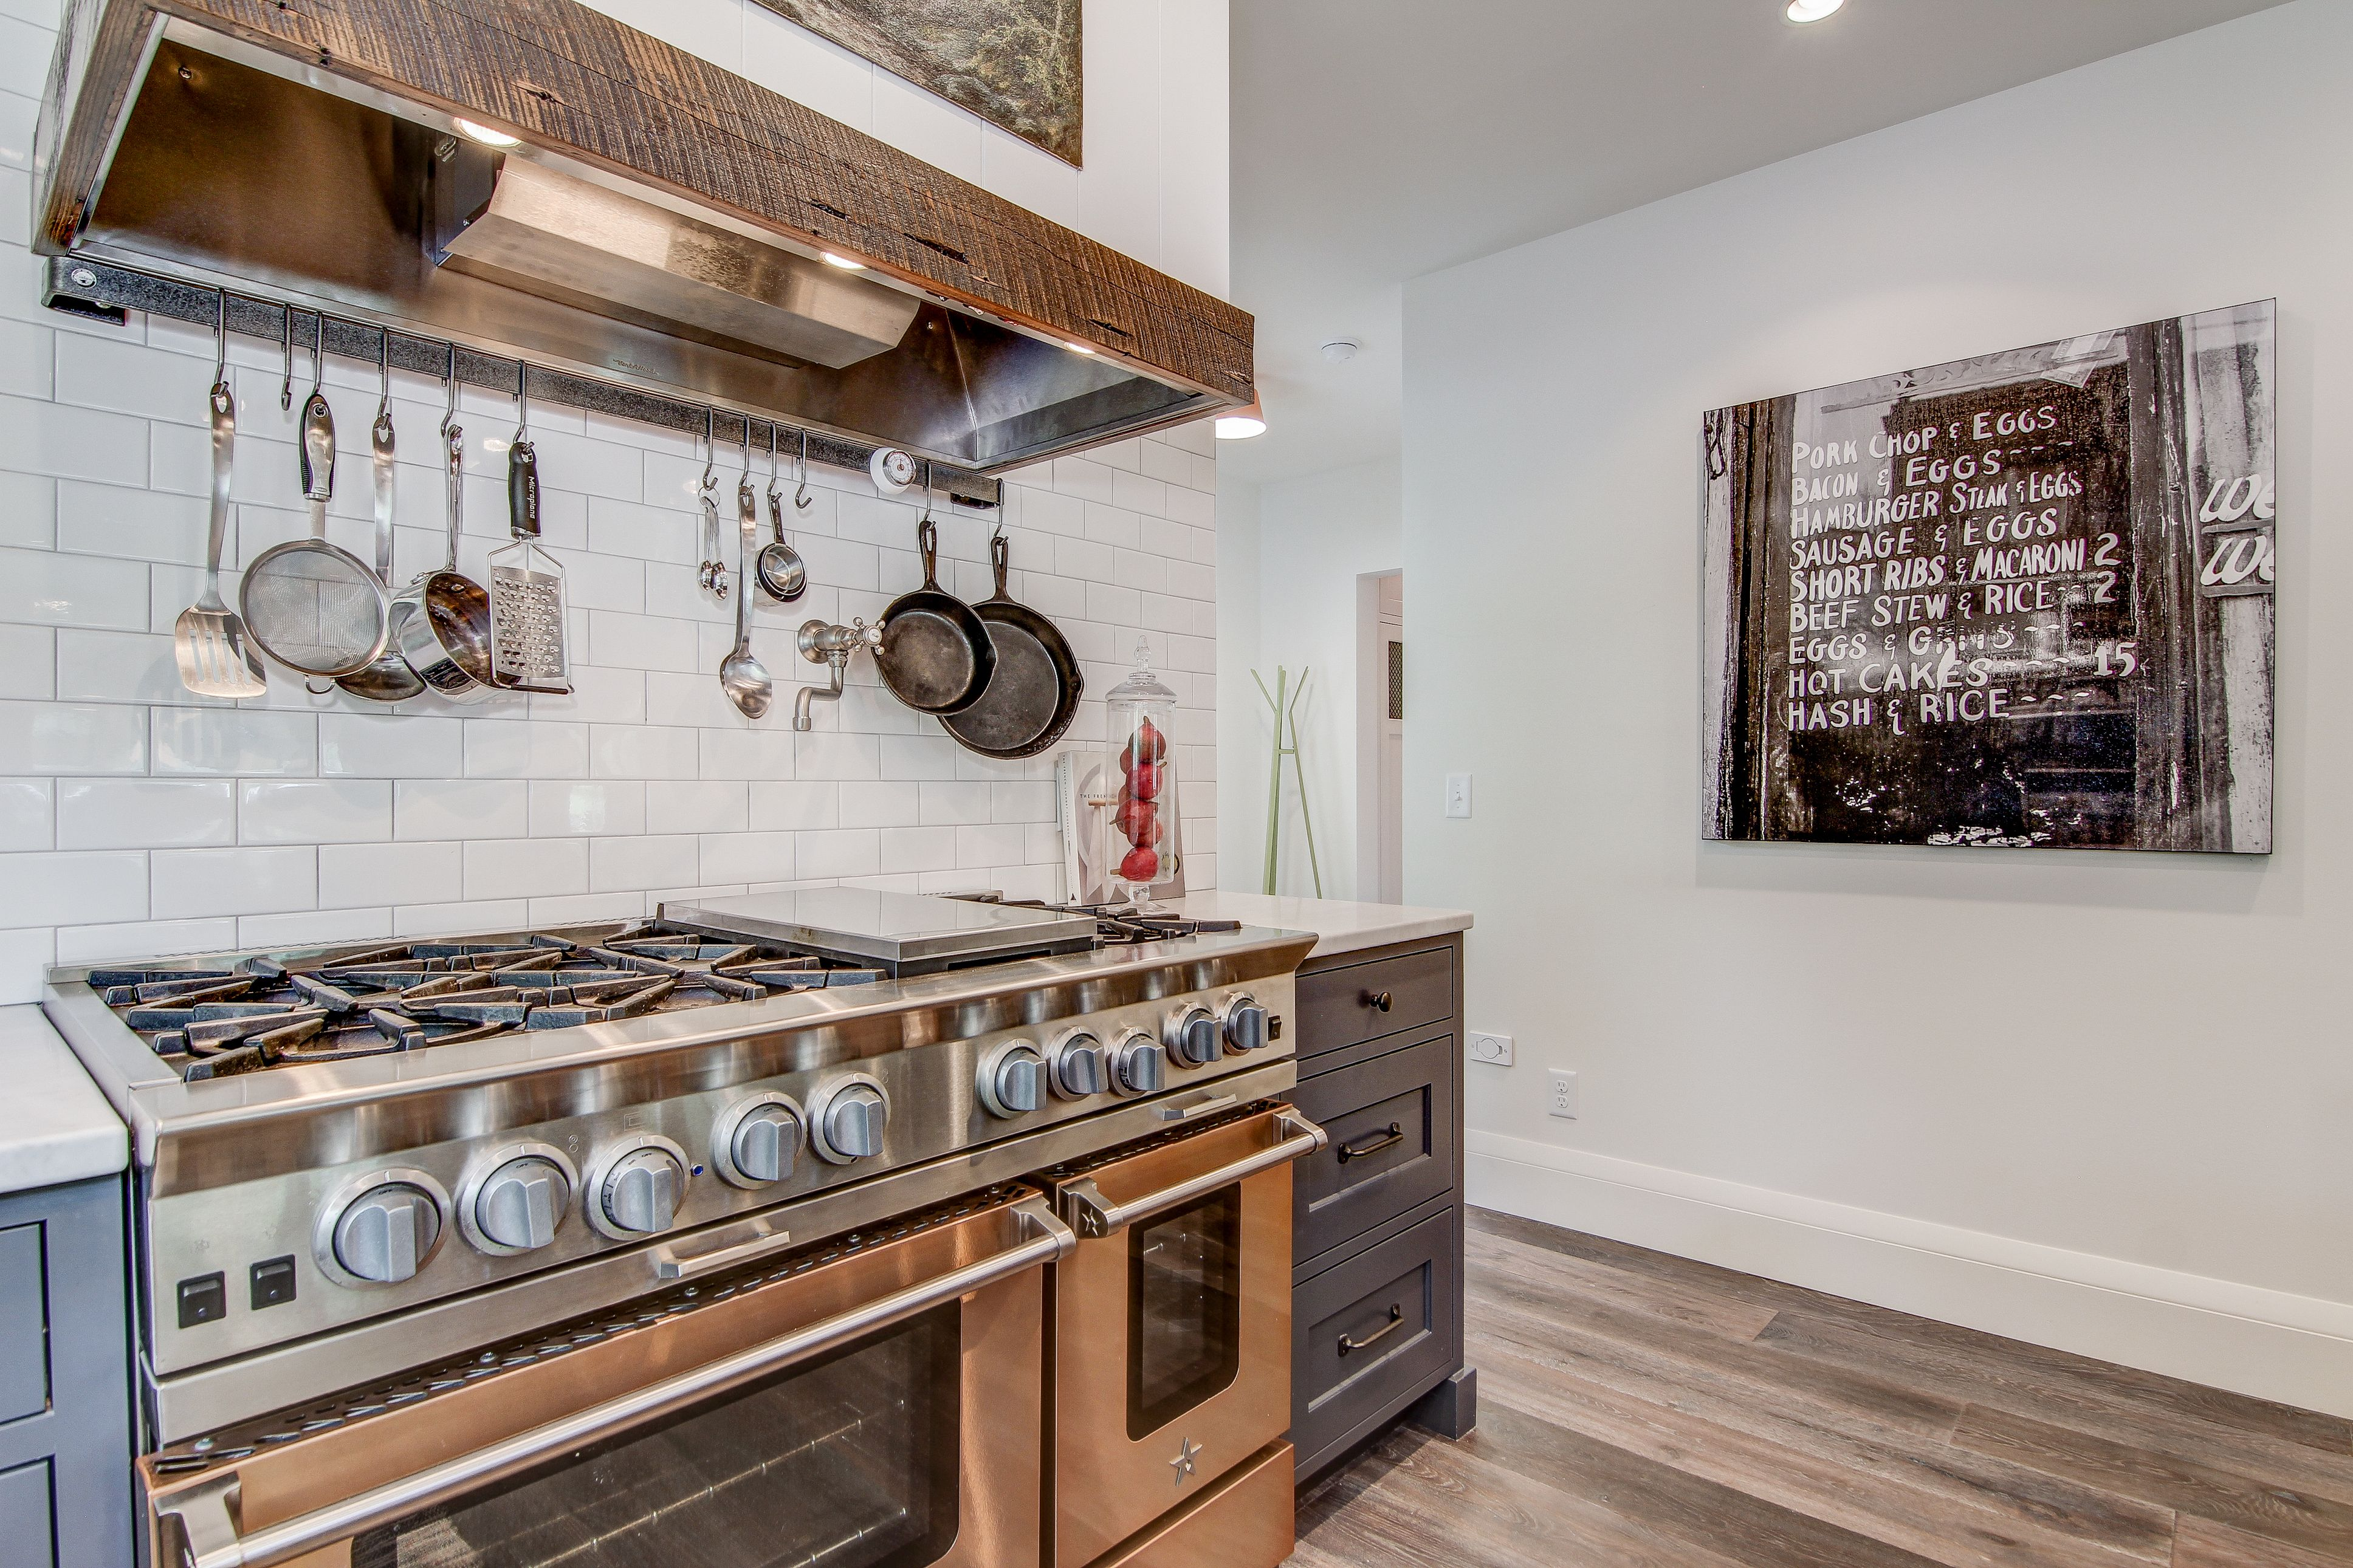 Duchateau riverstone thames duchateau pinterest subway tiles state of the art kitchen custom reclaimed wood hood subway tile and imported european floors dailygadgetfo Images